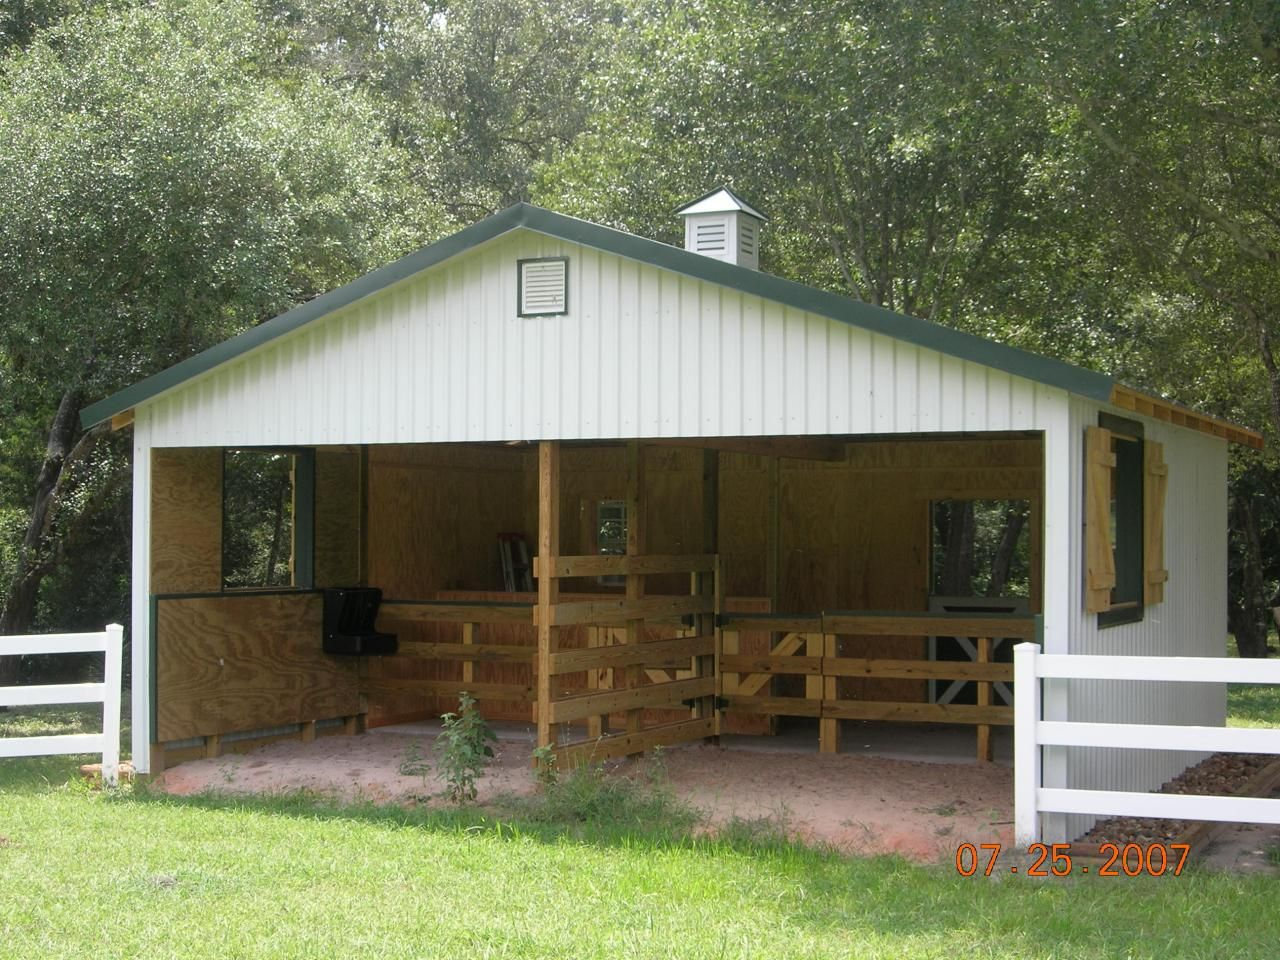 Cccd loafing shed barn and apartments pinterest barn for Horse barns with apartments plans